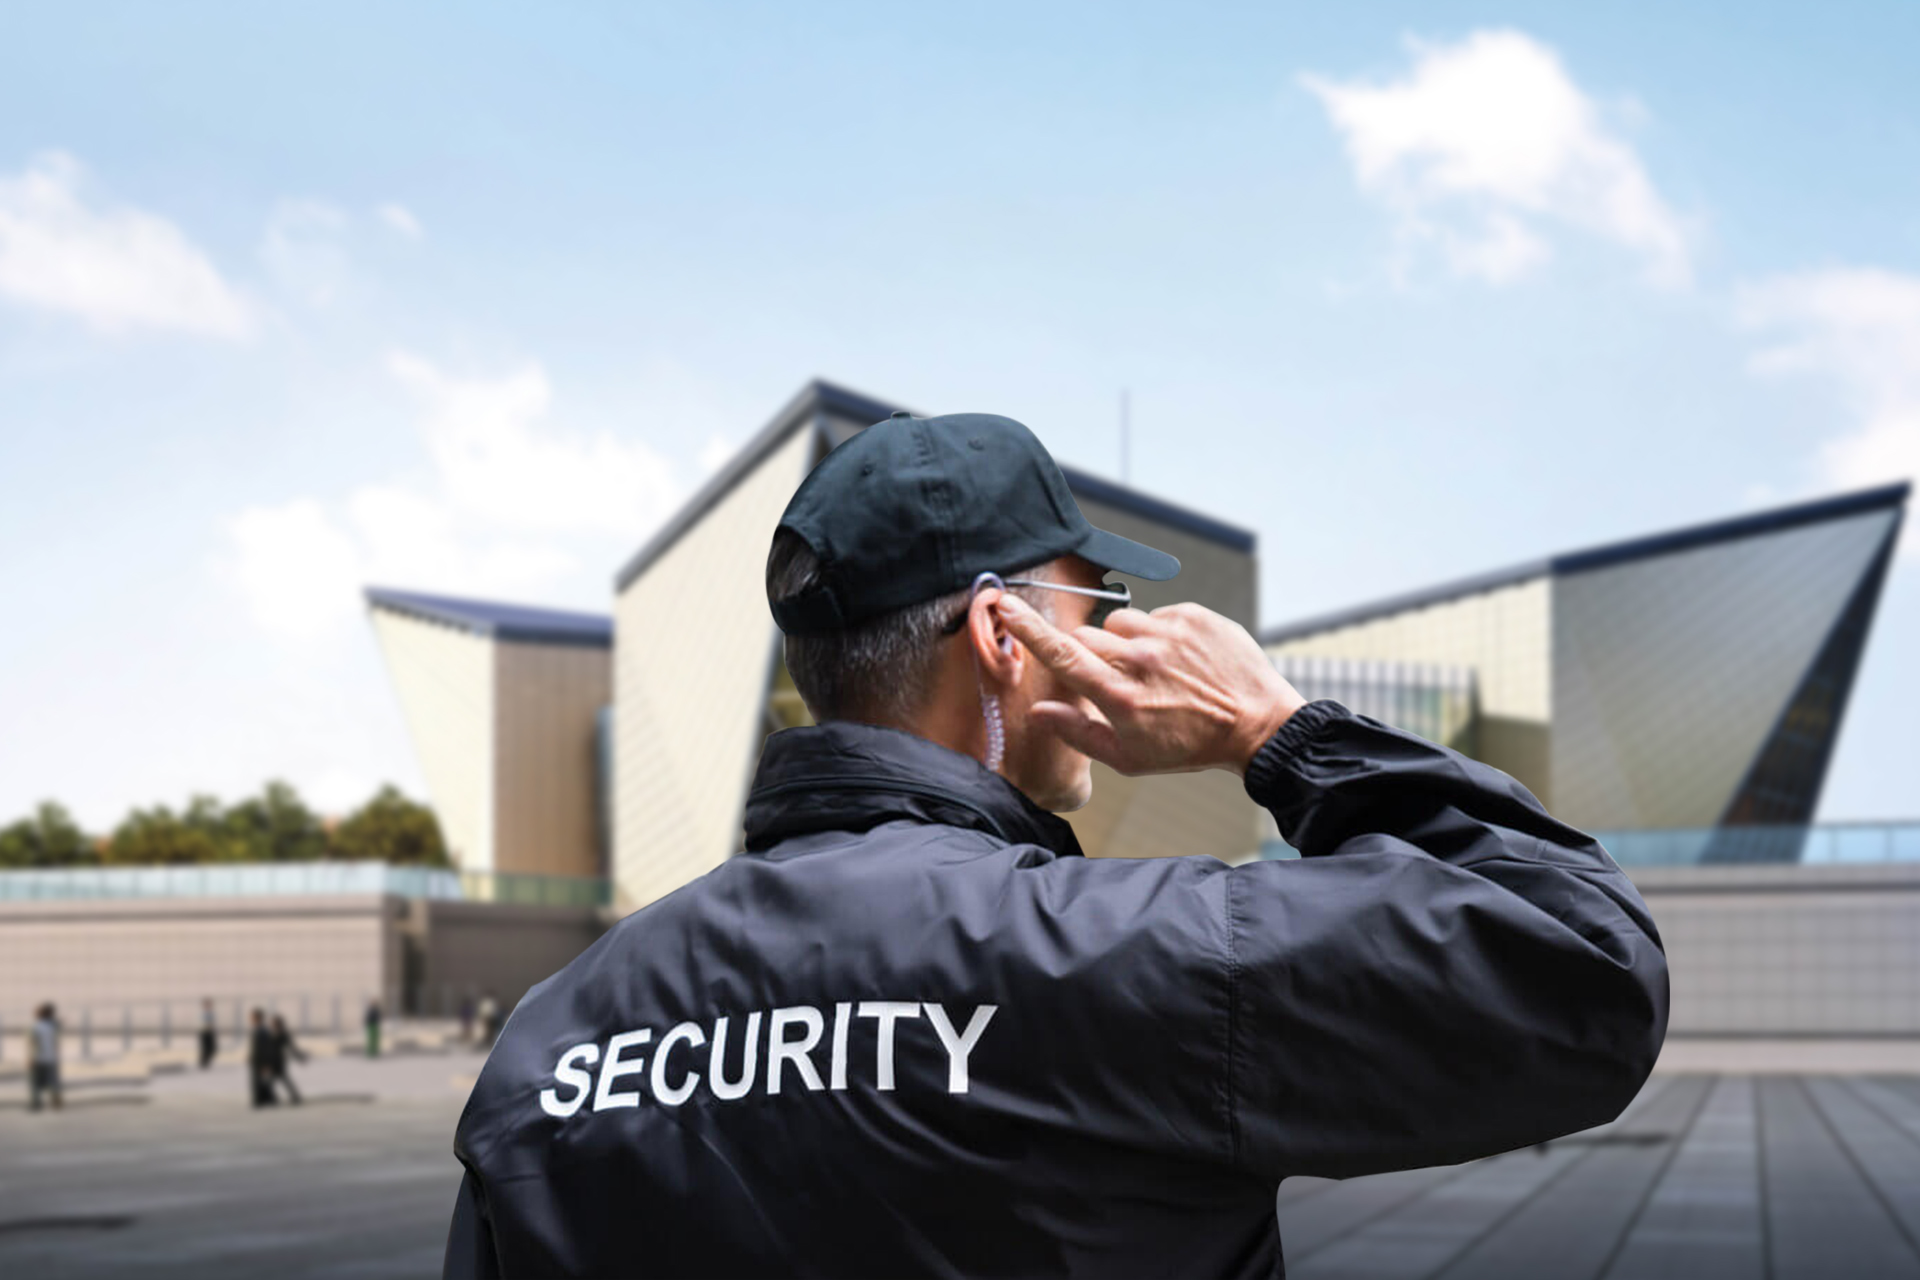 Best Security Services in Bhandup